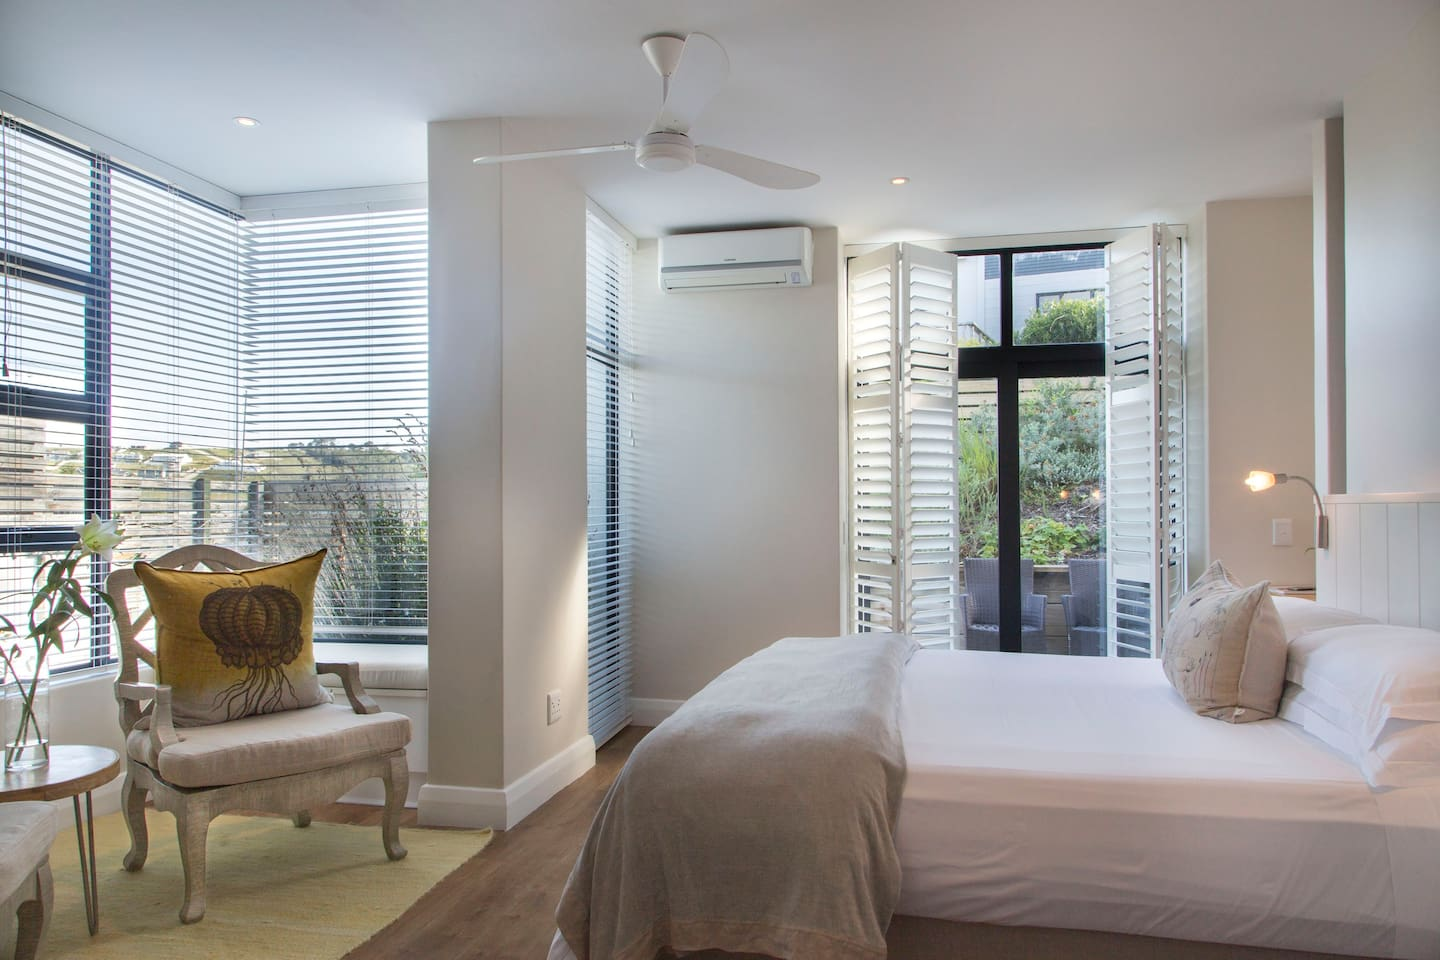 Room 9 is a sunny room with a small garden area and its own private plunge pool. En-suite bathroom with bath, separate toilet and separate shower. Air-conditioning.